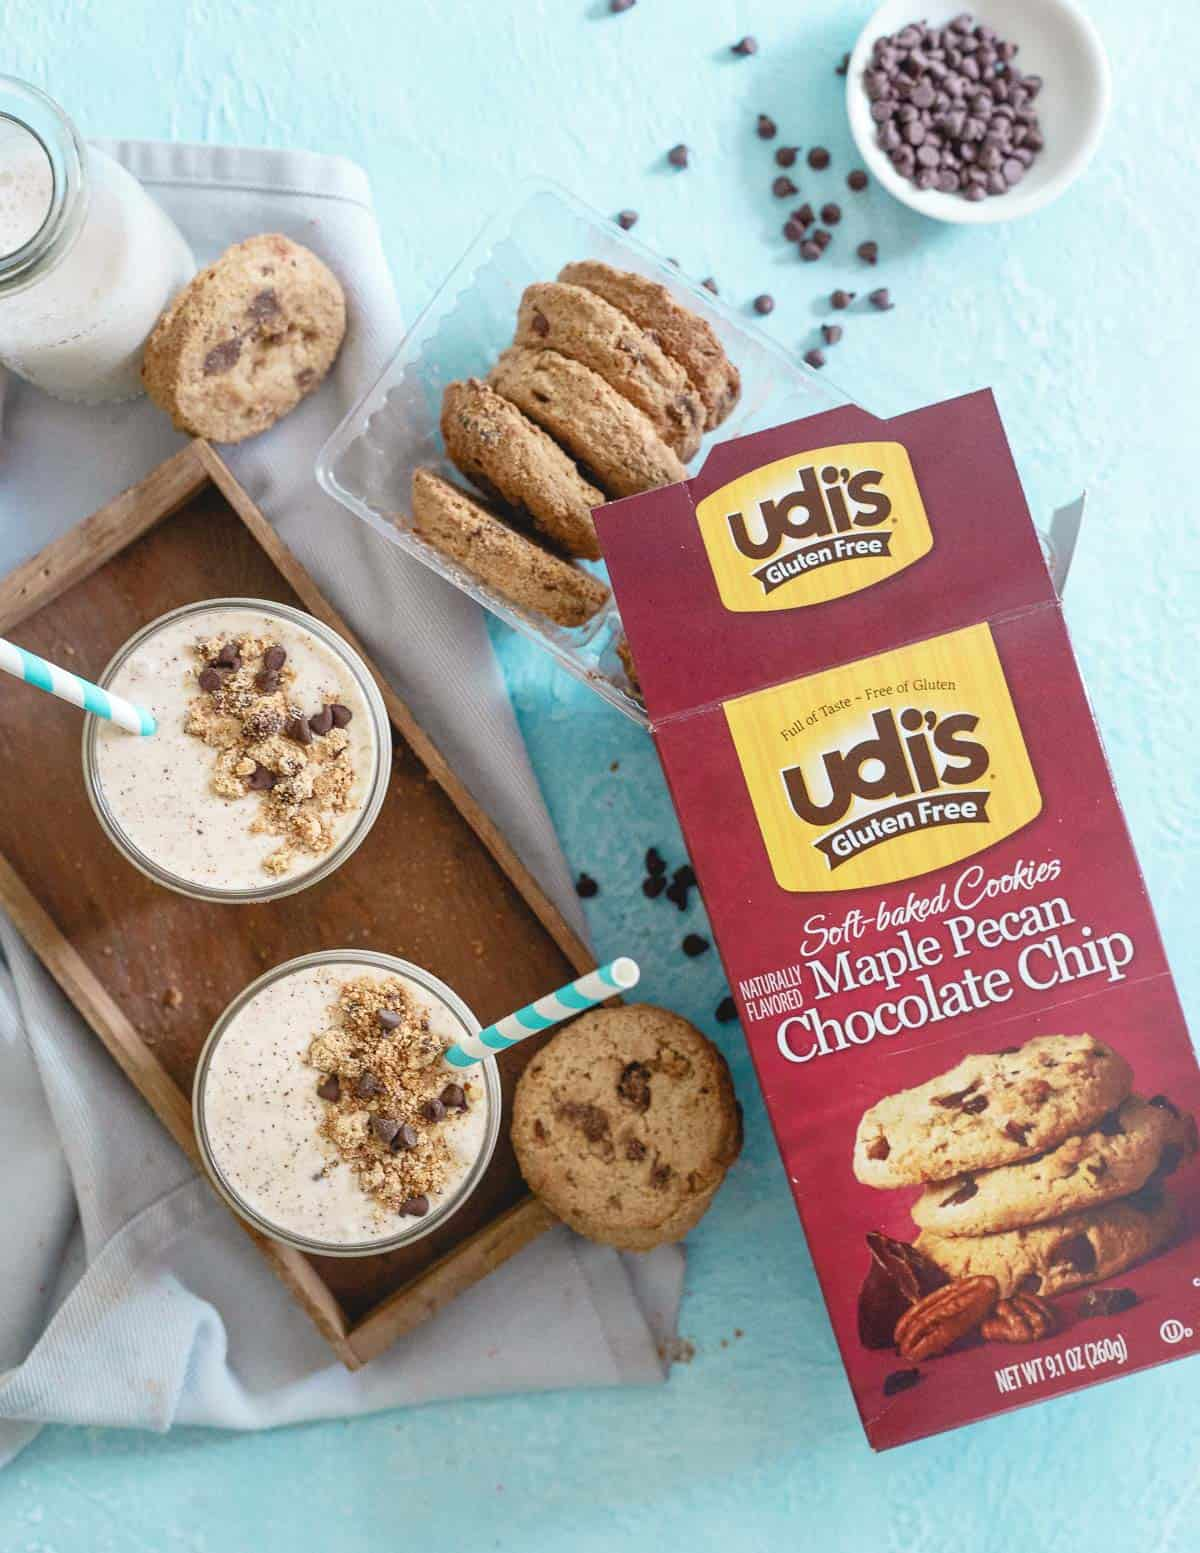 Use Udi's gluten free maple pecan chocolate chip cookies in this healthier smoothie for a deliciously decadent gluten-free treat!